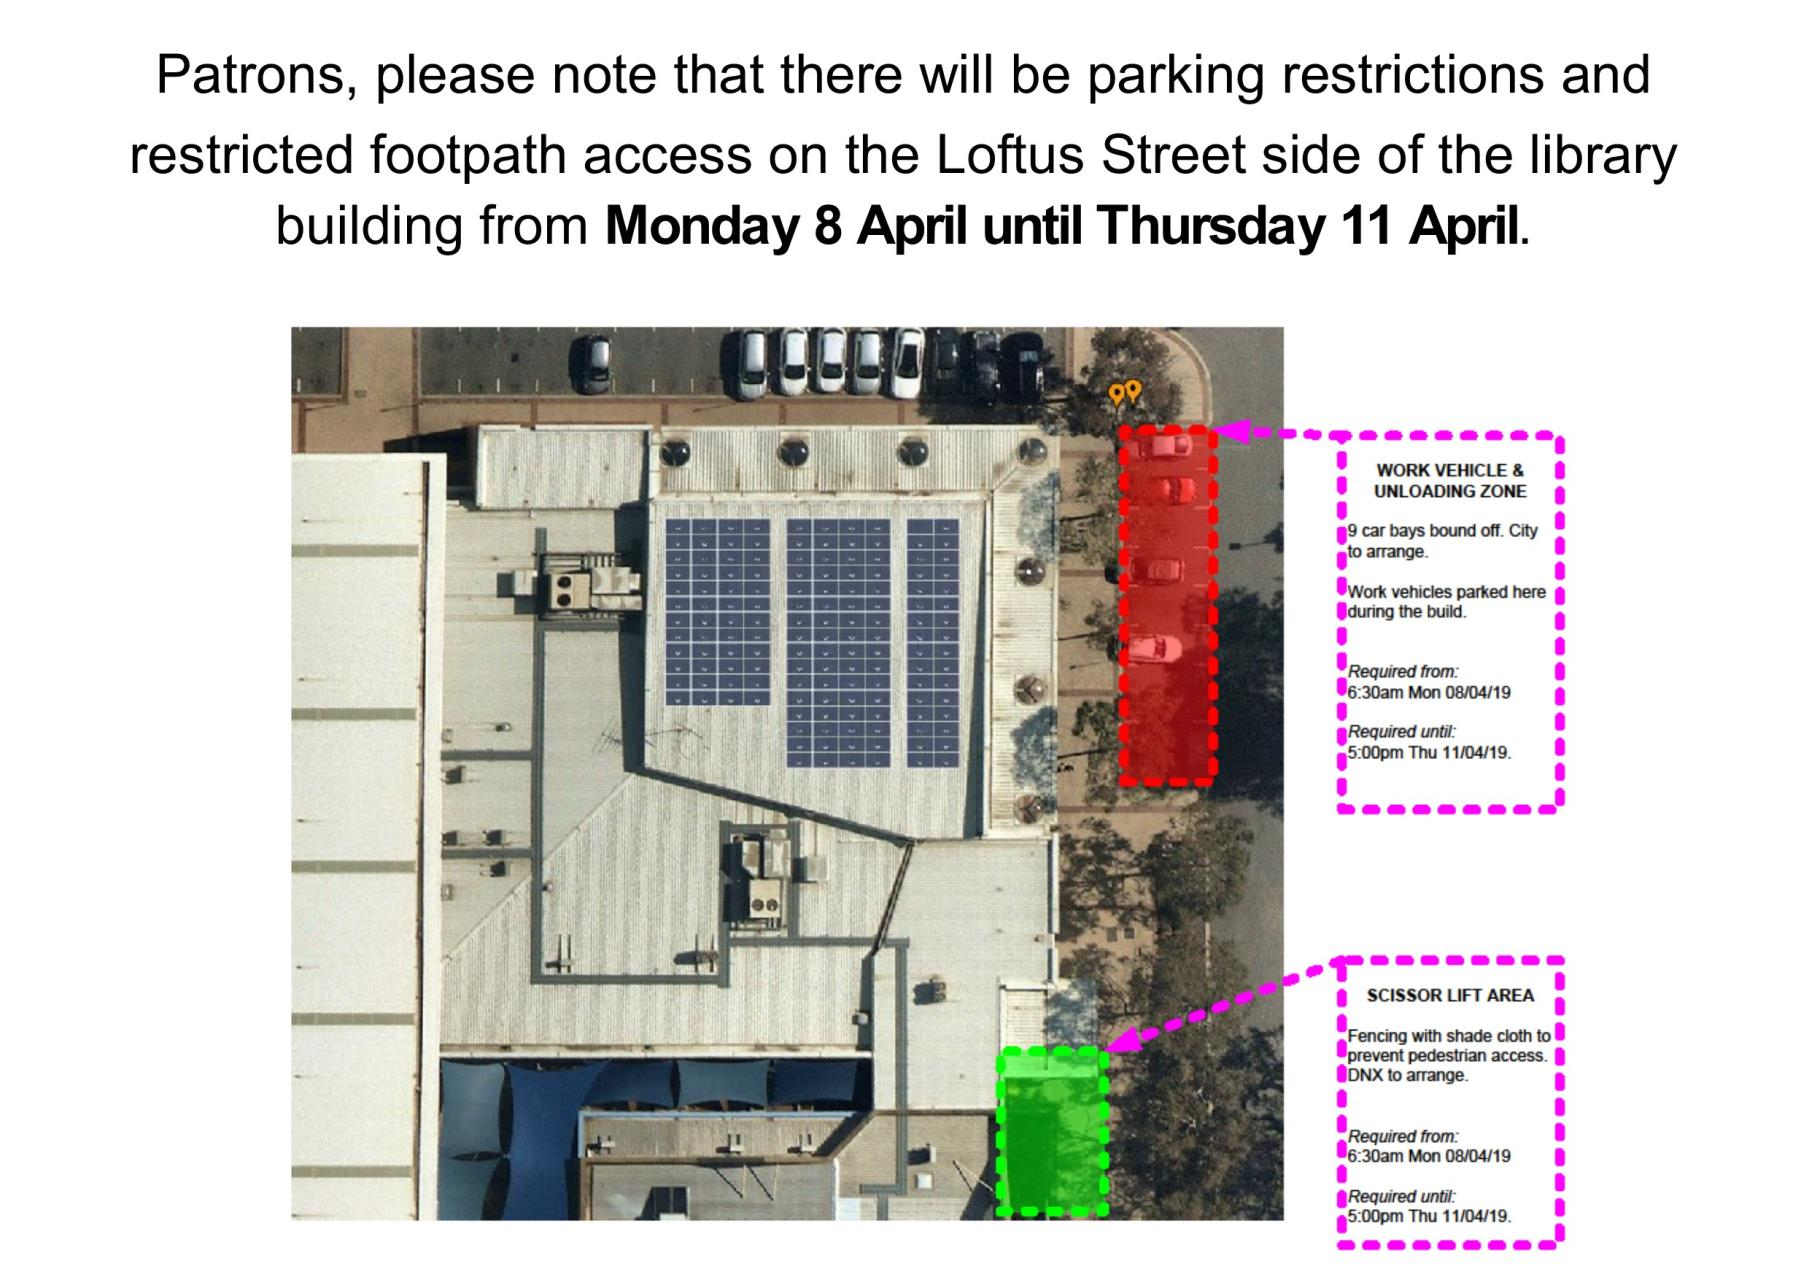 Parking and footpath restrictions due to building maintenance